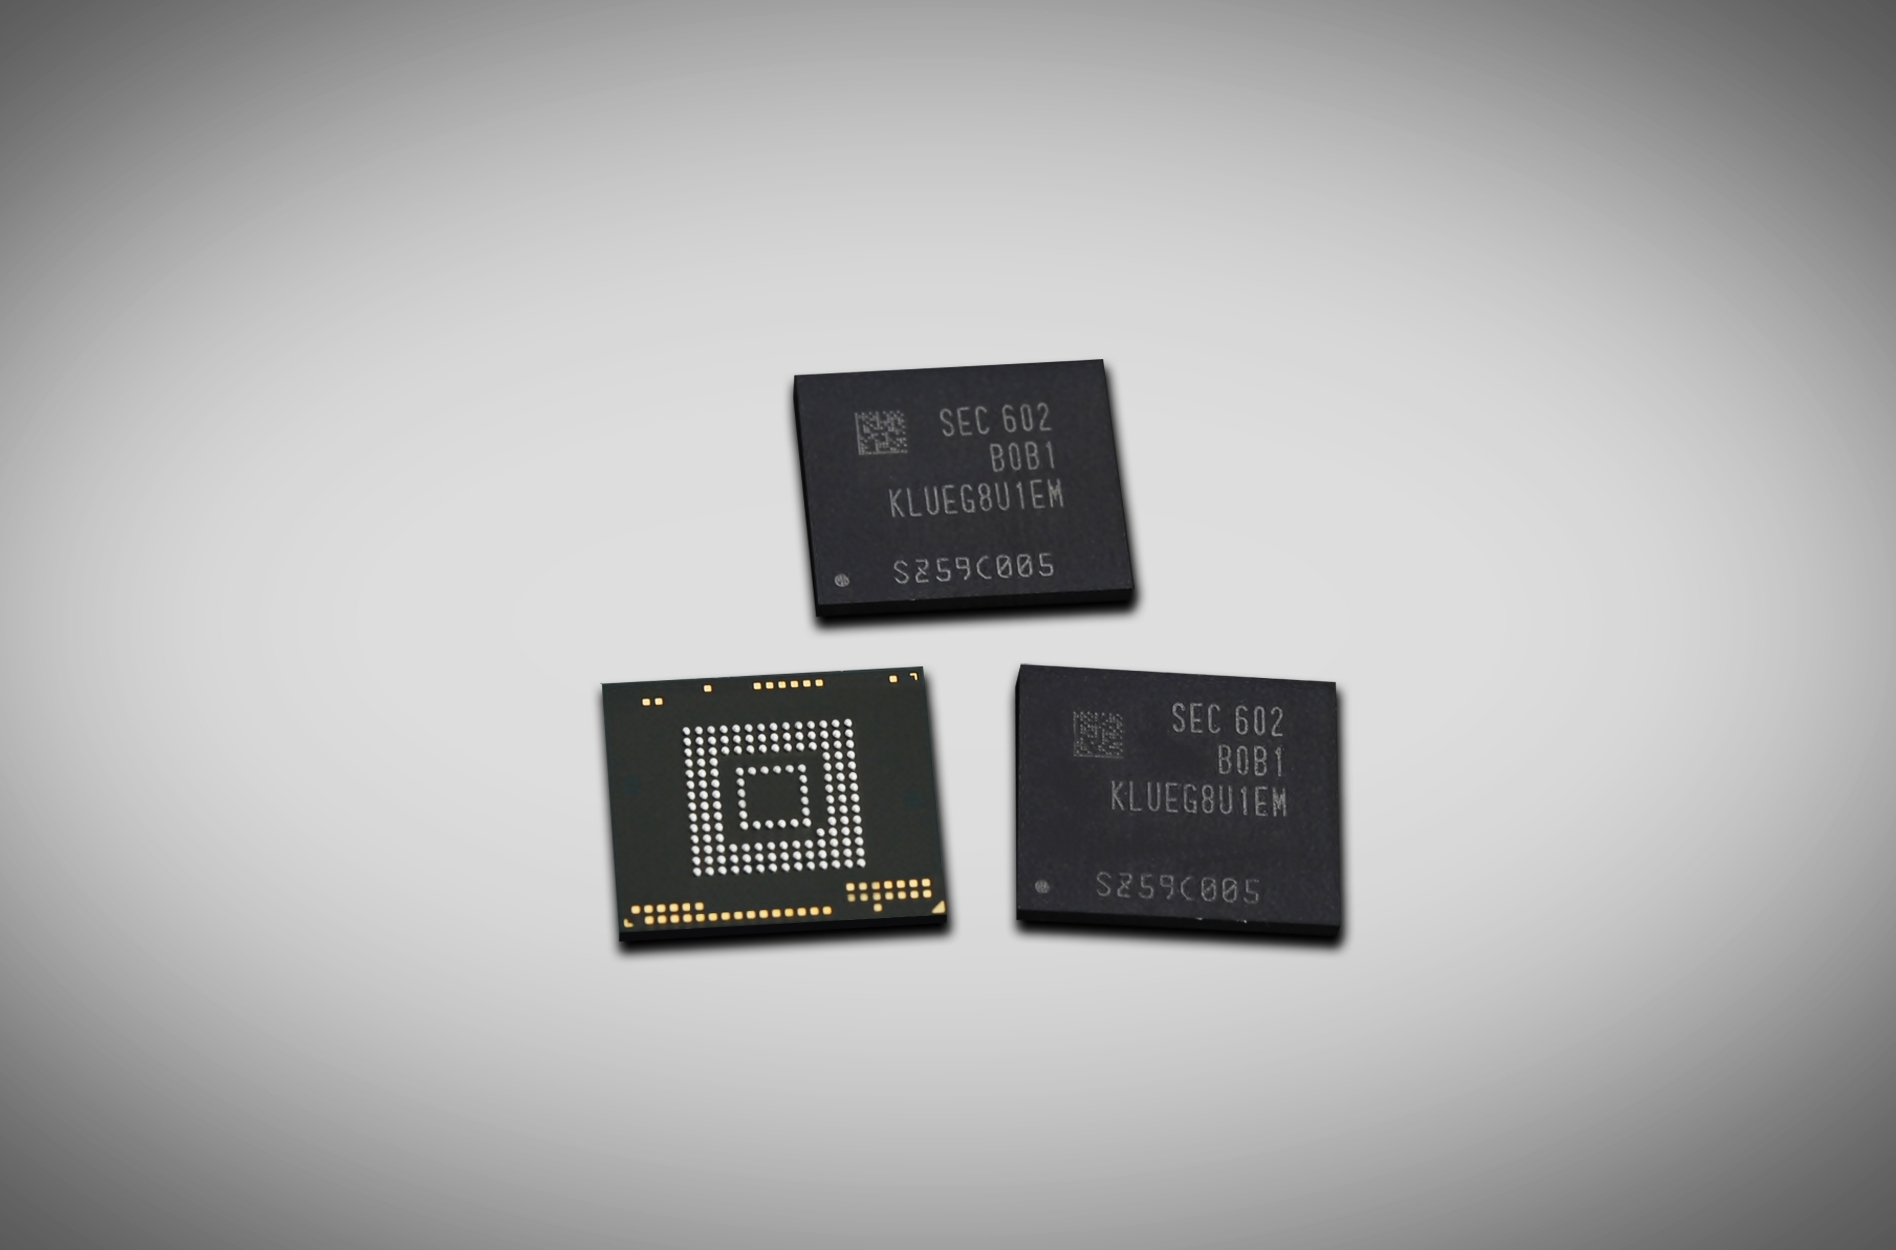 samsung introduces industry s first 256 gigabyte universal flash